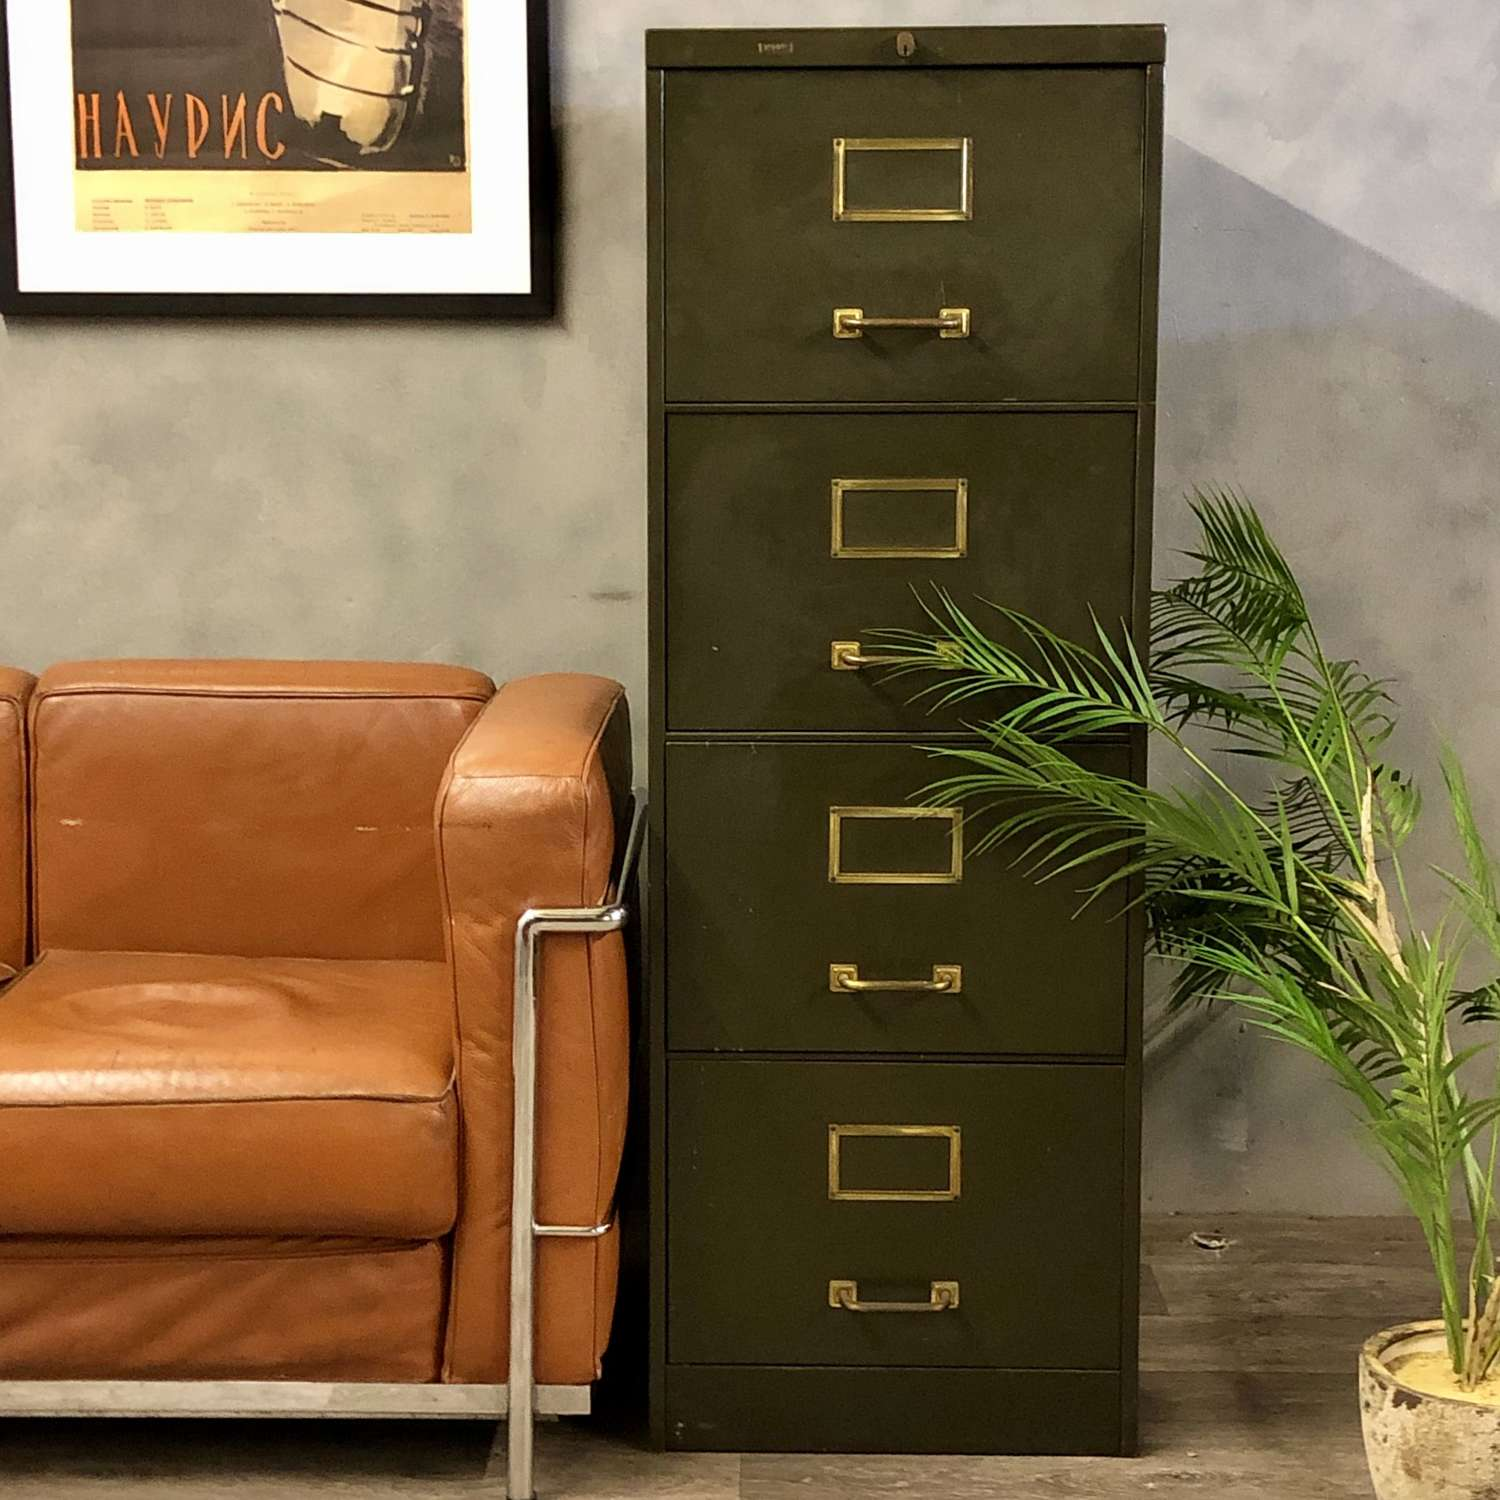 Vintage Roneo filing cabinet